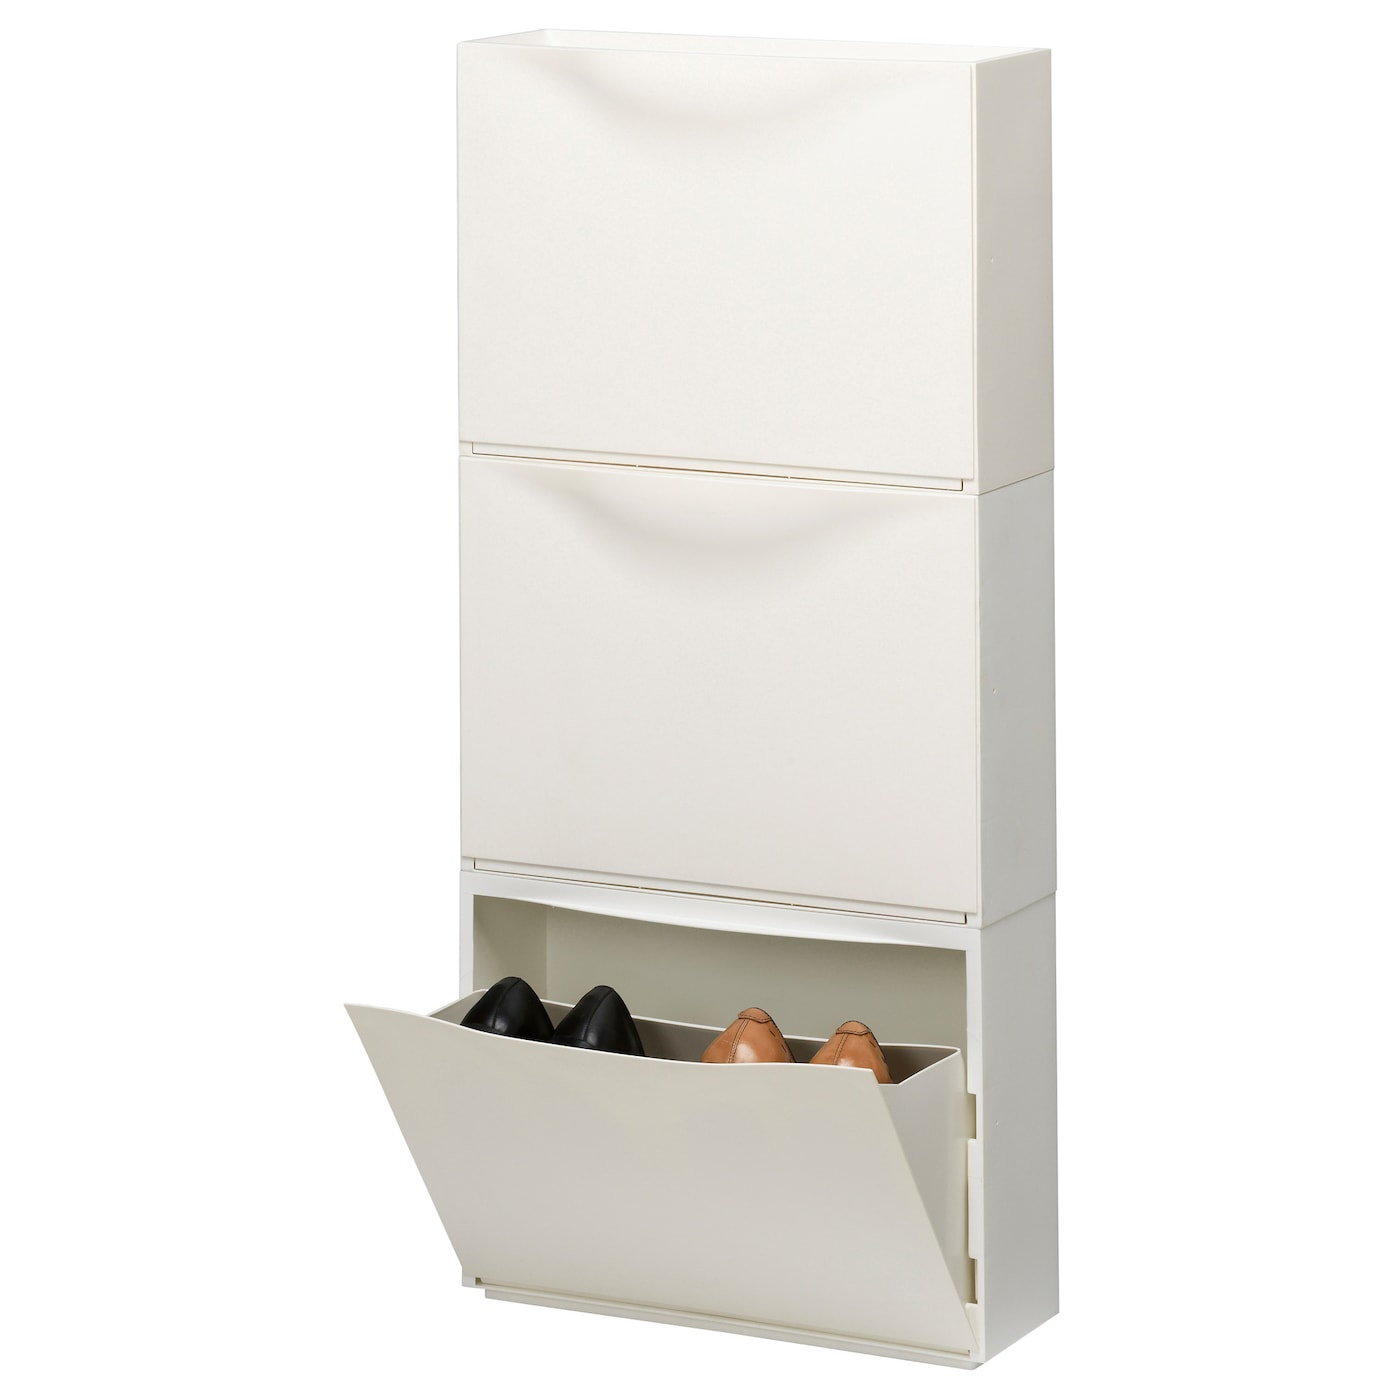 Trones shoe cabinet storage white 51x39 cm ikea for Meuble 0 chaussures ikea